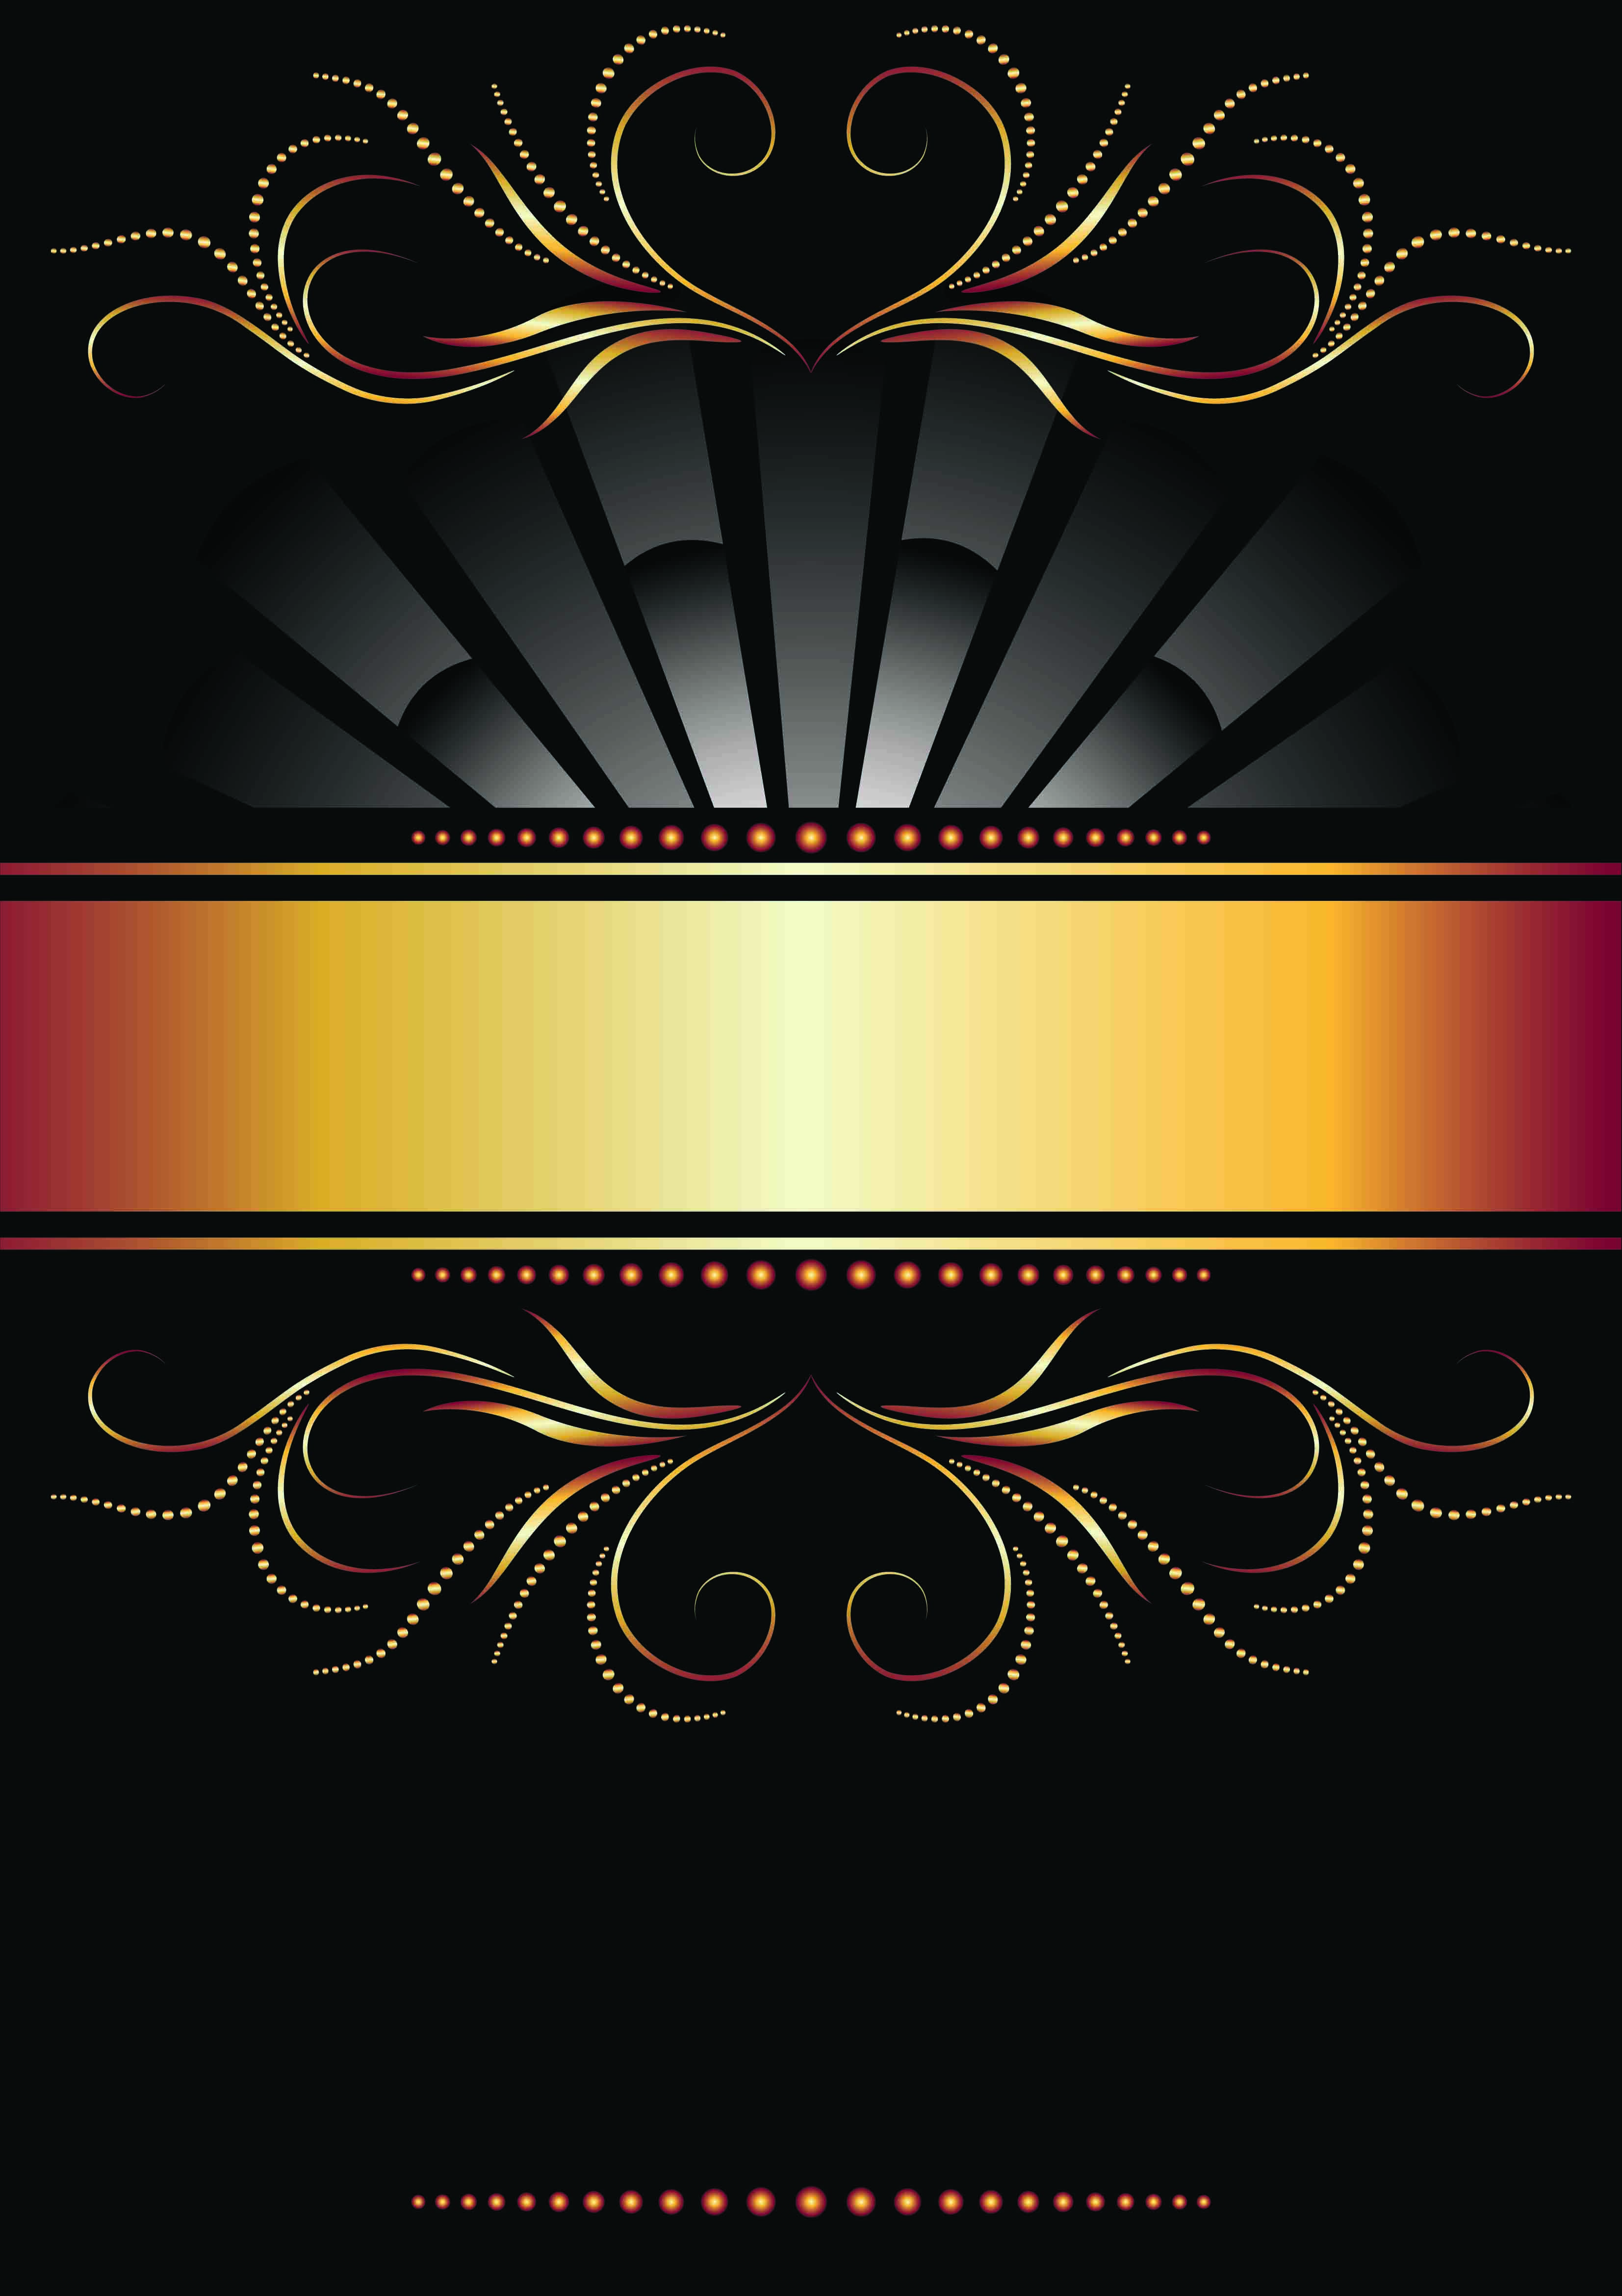 Wallpapers For Black And Gold Background Poster Background Design Golden Background Black Background Wallpaper